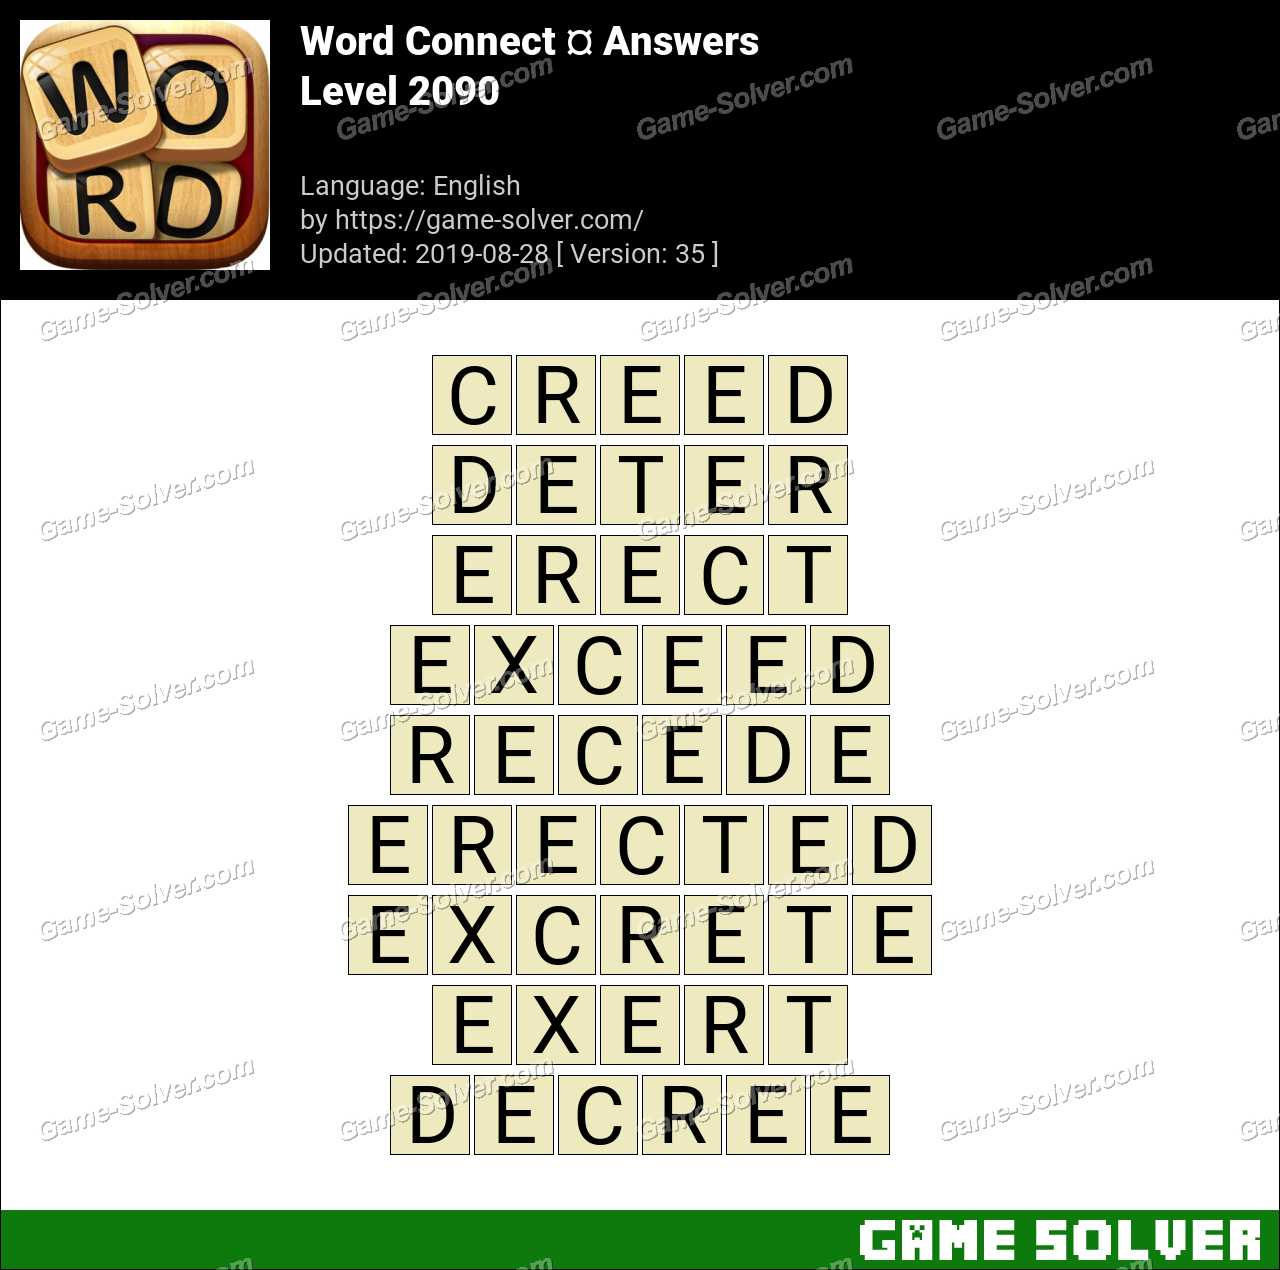 Word Connect Level 2090 Answers